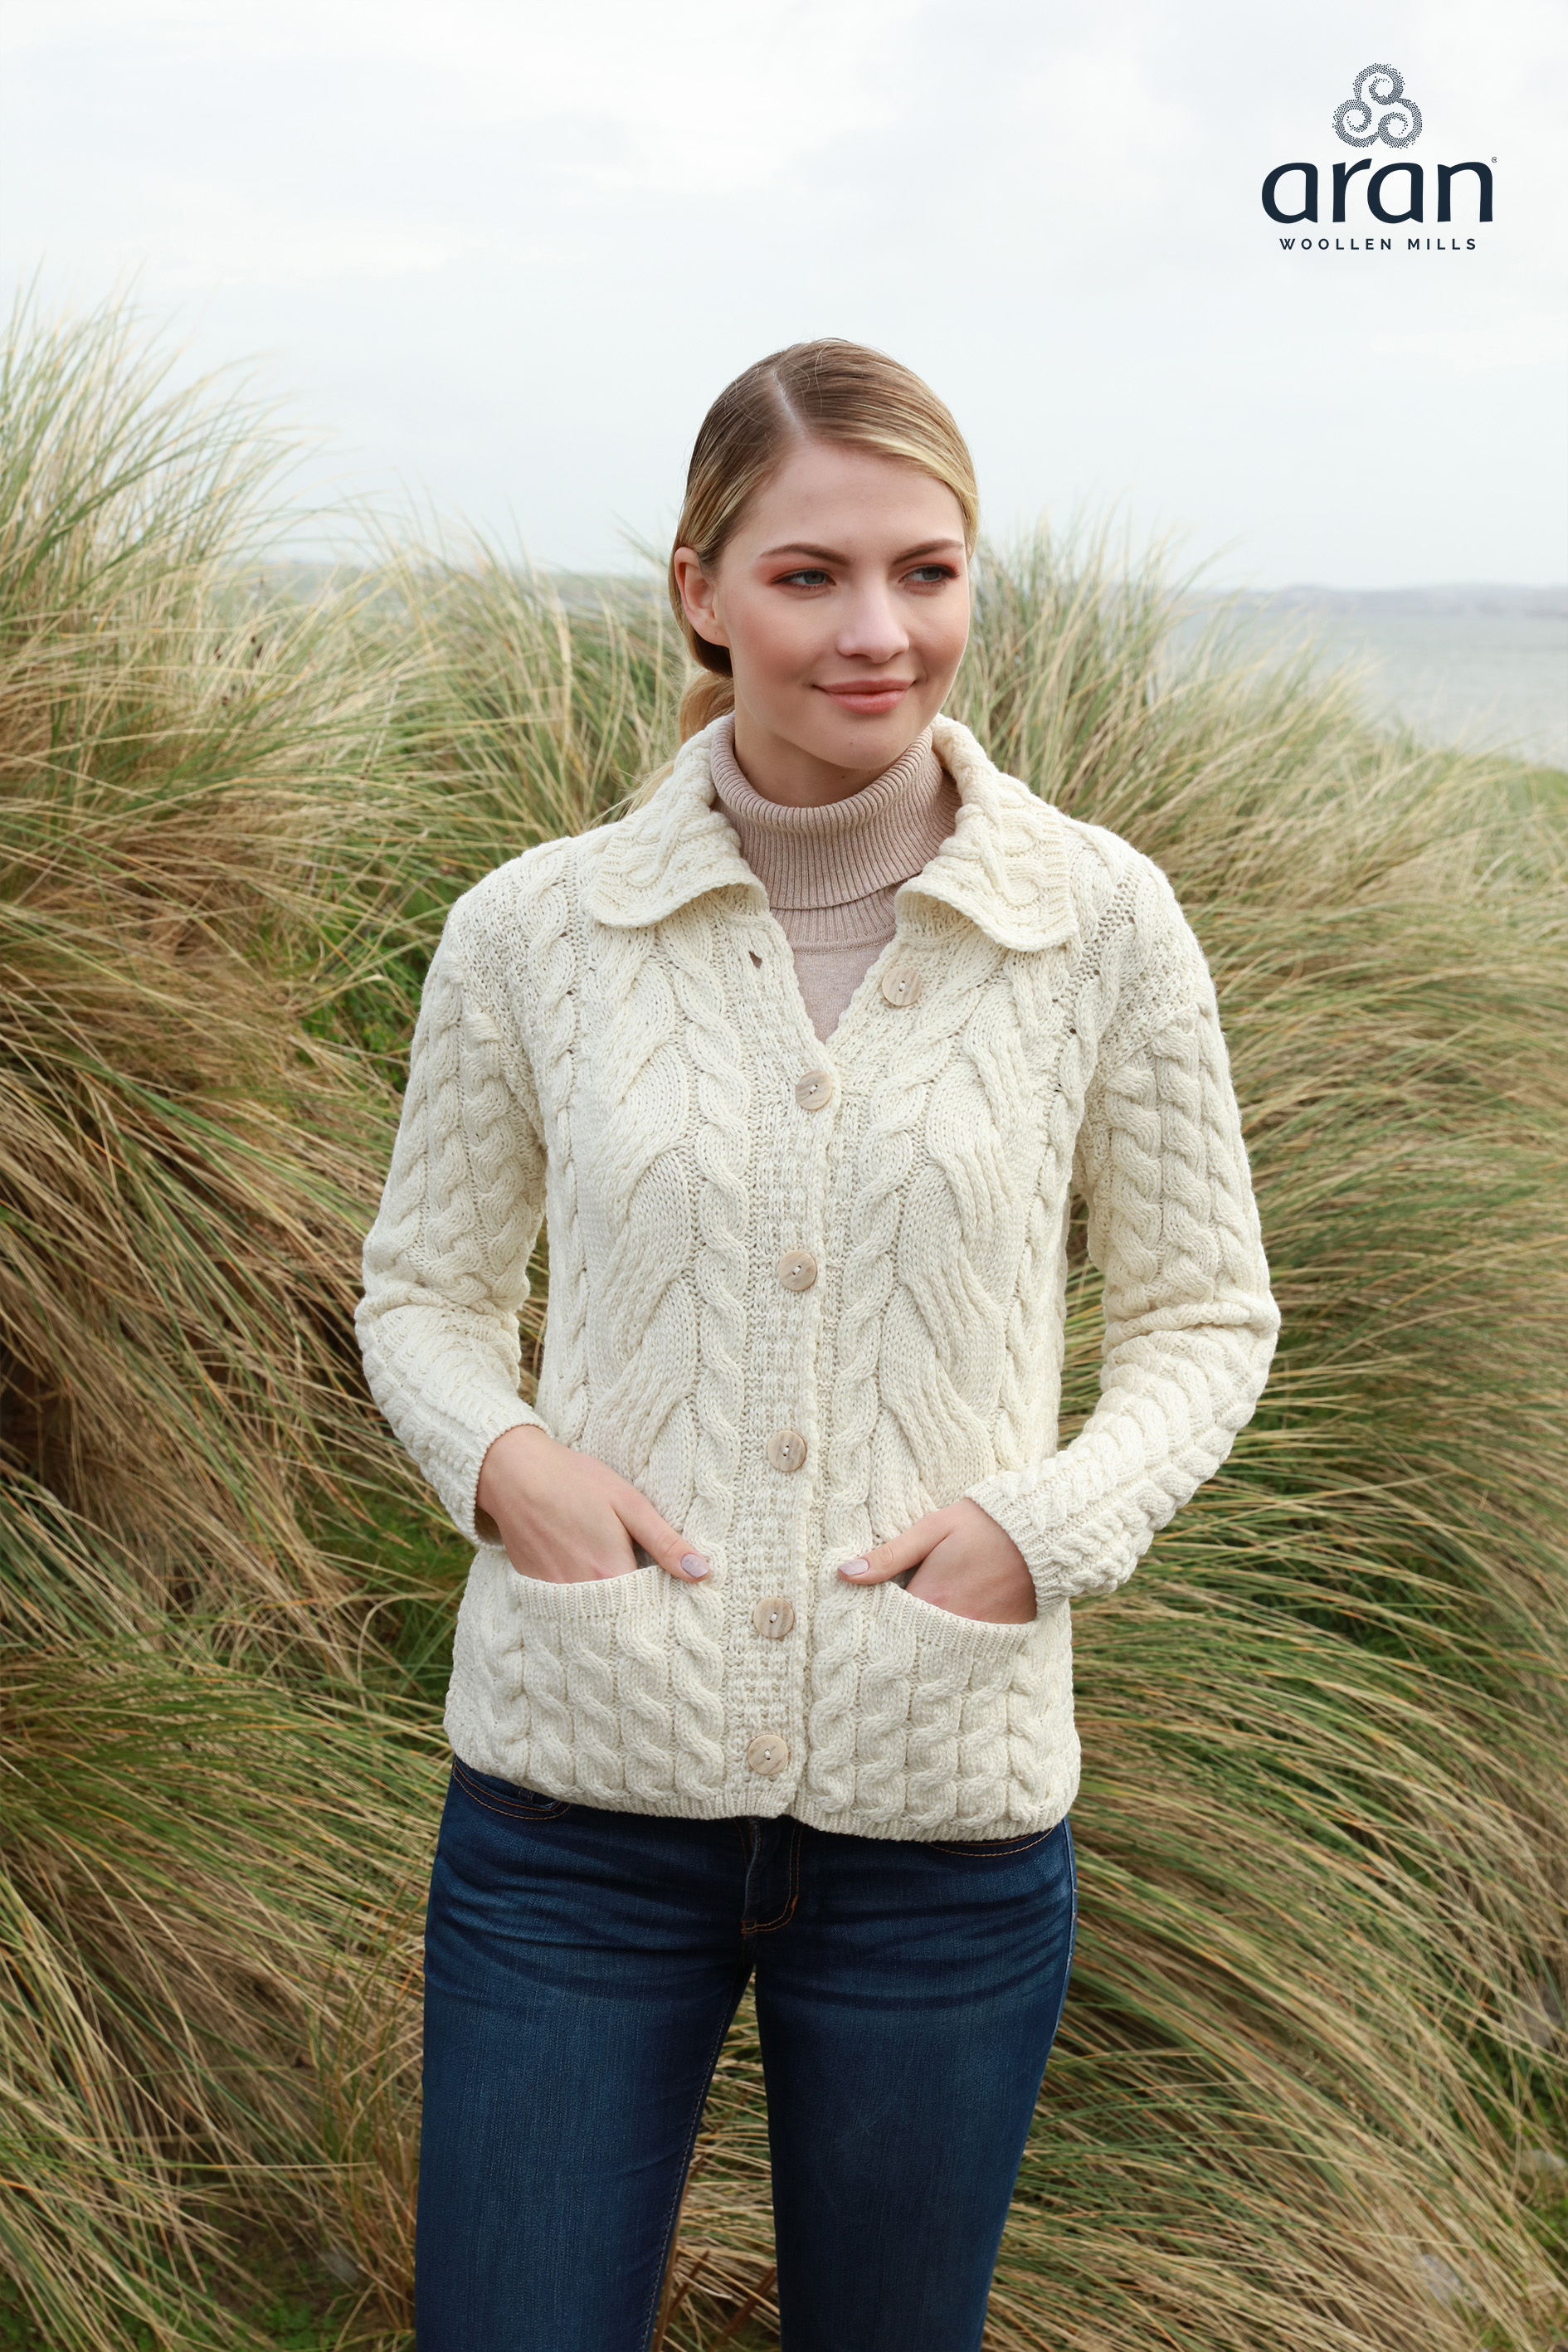 Merino Wool Super Soft Ladies Button Cable Cardigan b940 367 f23810dac